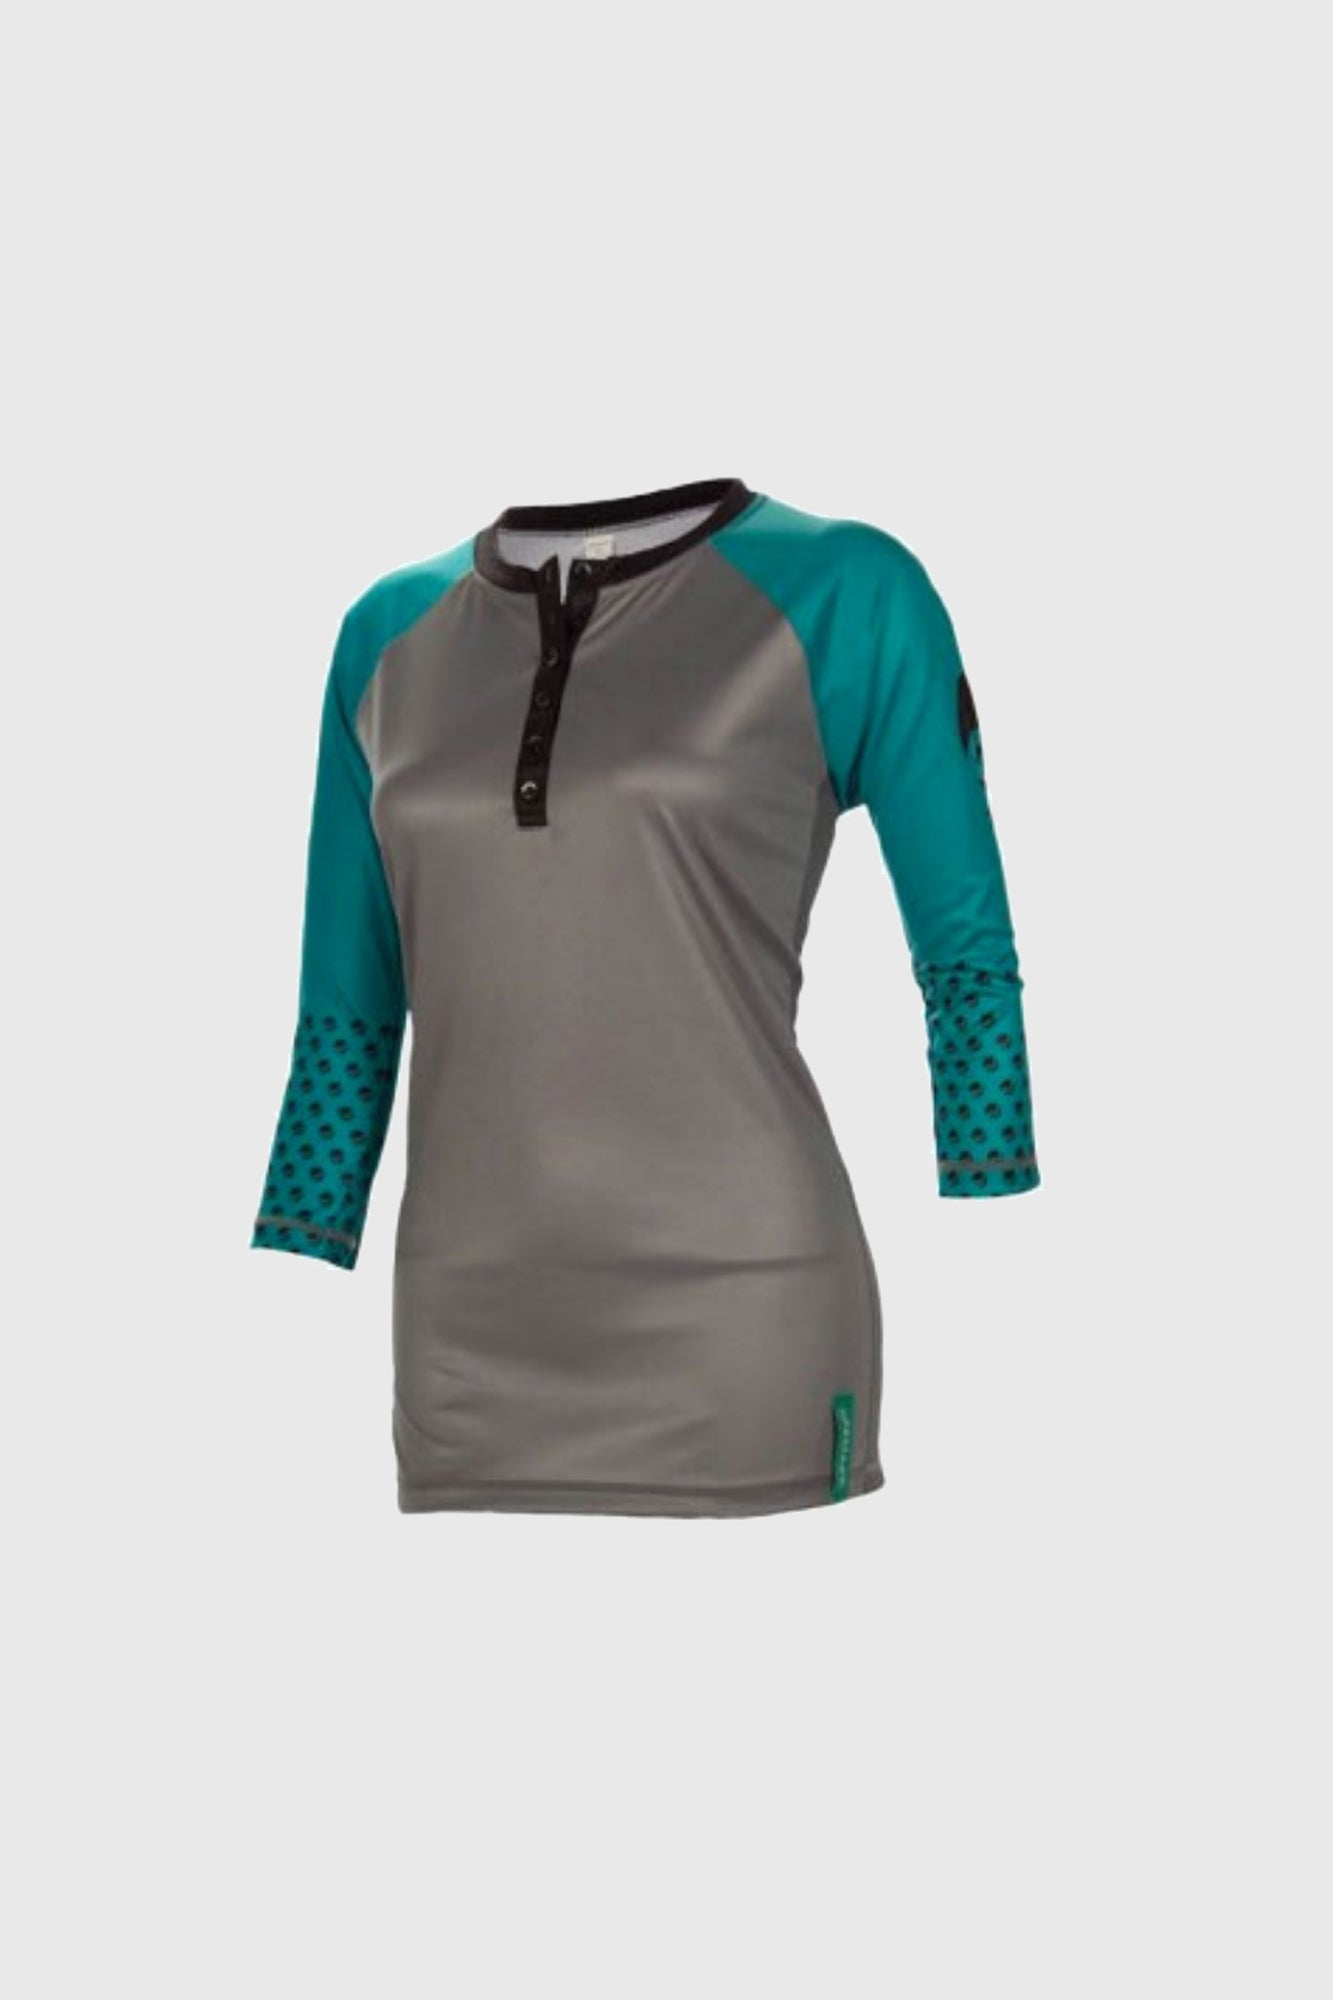 Juliana Enduro 3/4 Jersey